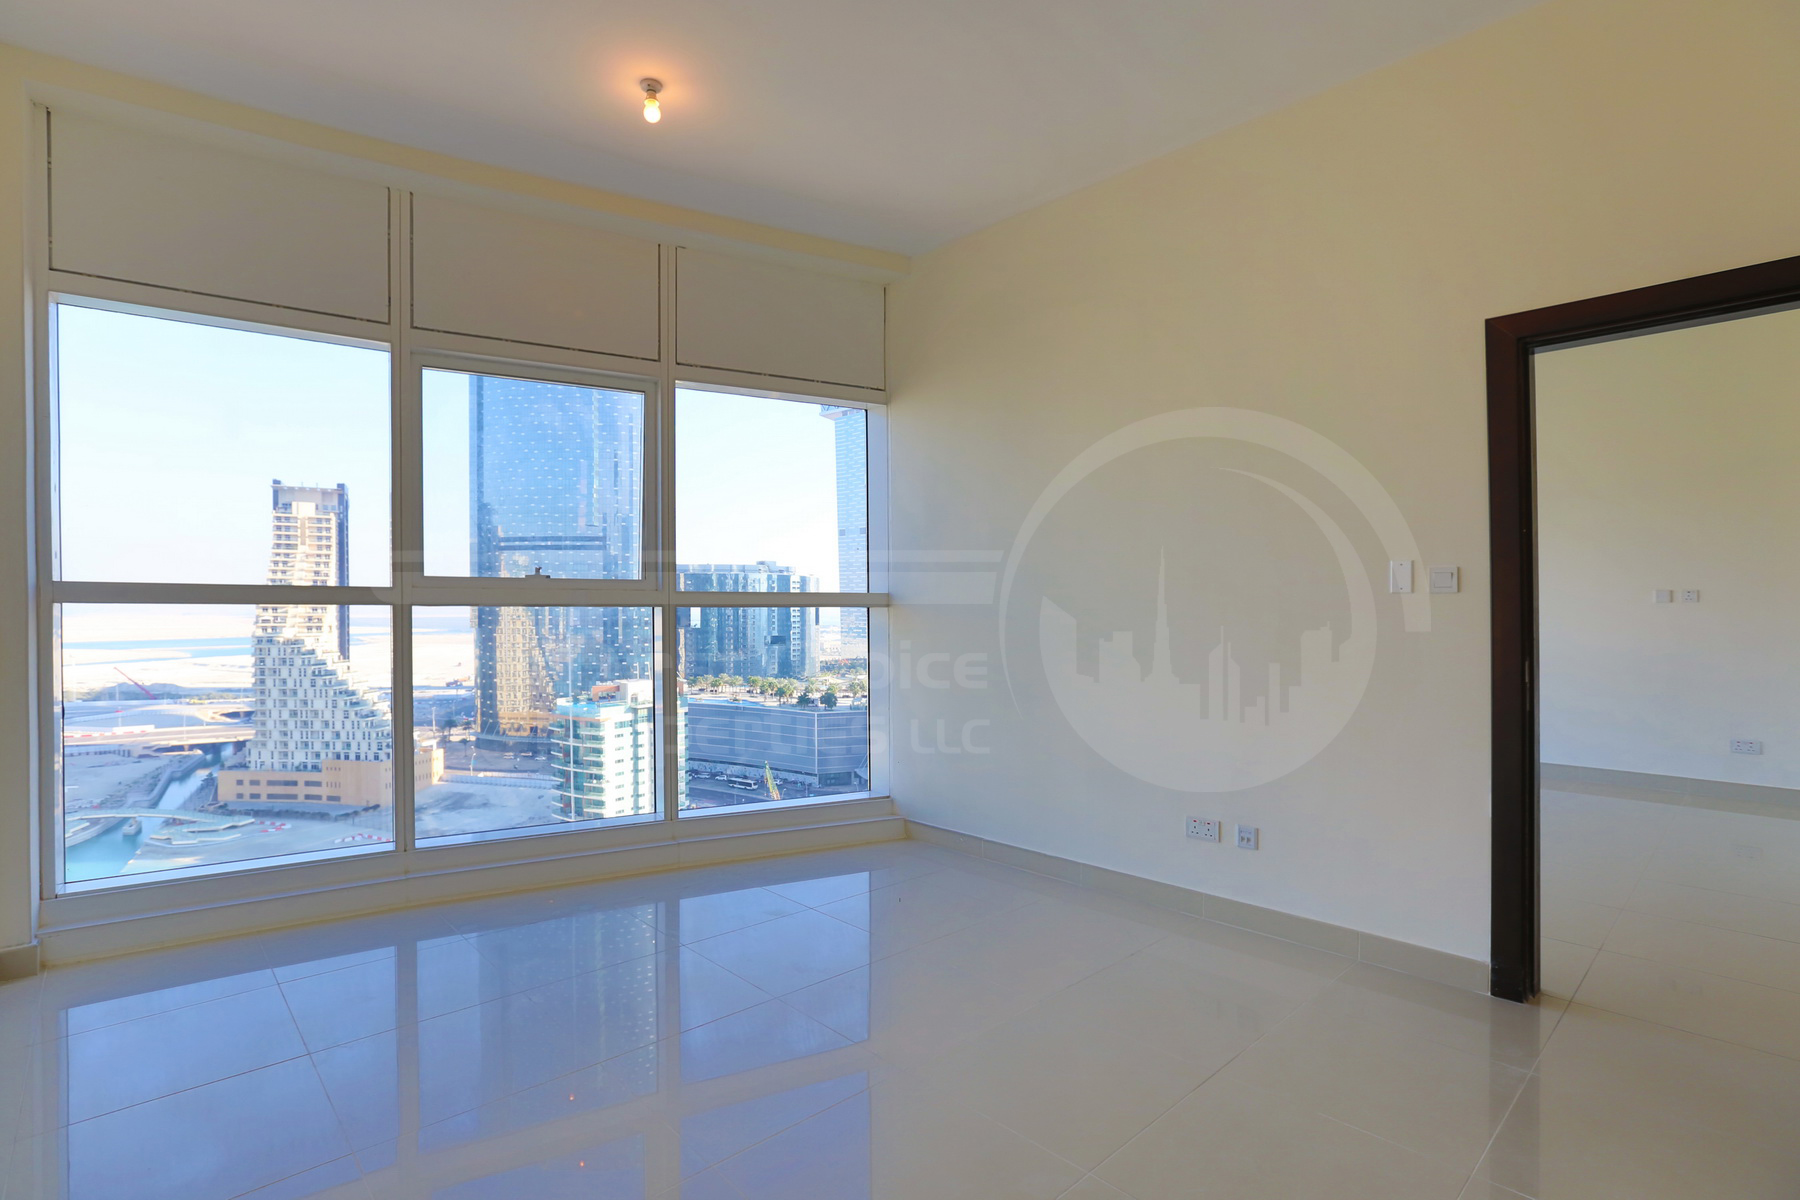 1BR Apartment - Abu Dhabi - UAE - Al Reem Island - City of Lights - C10 Building (18).JPG